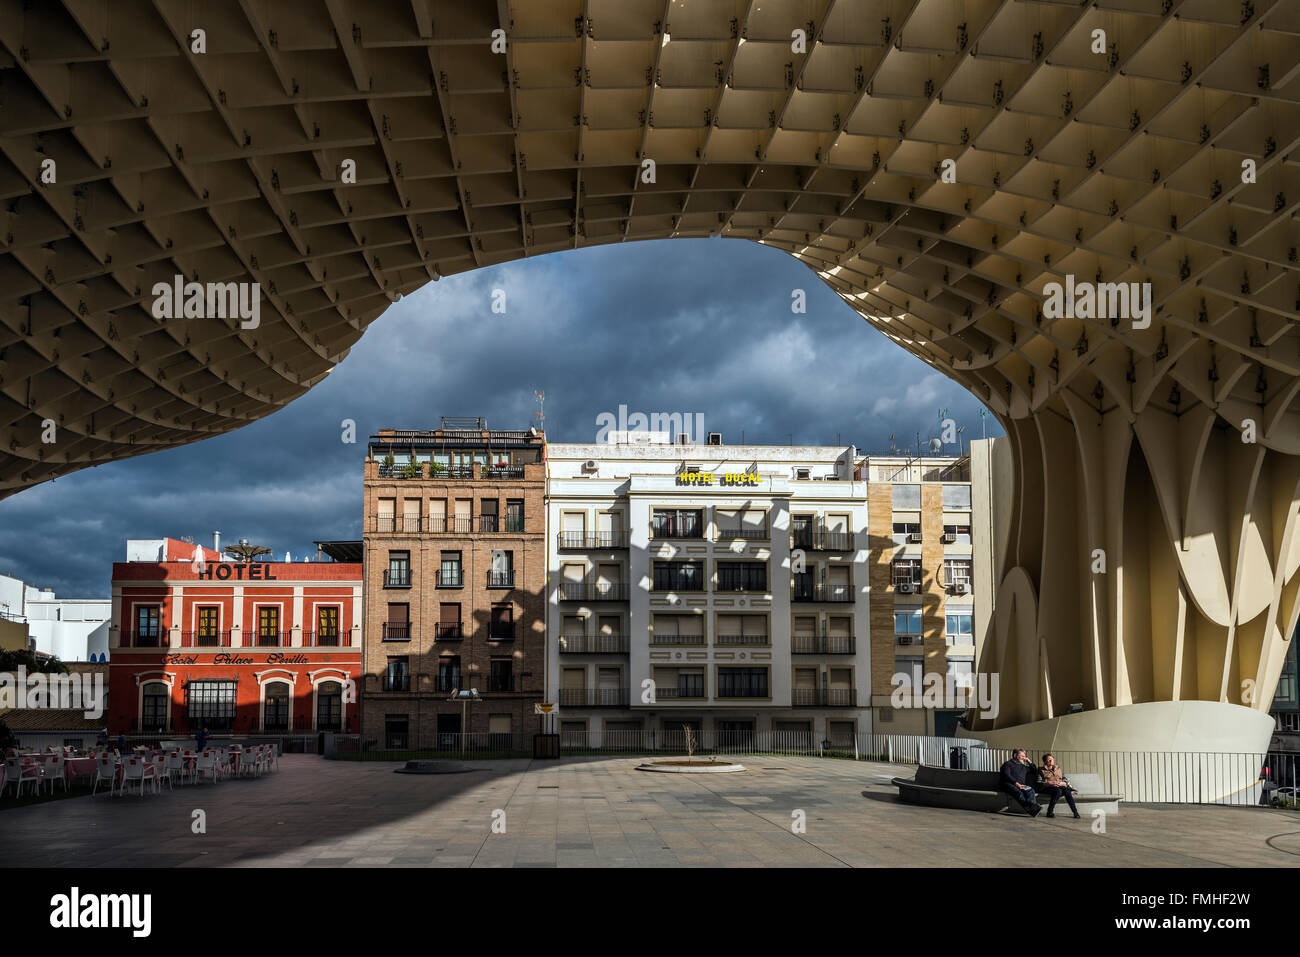 Metropol parasol the world s largest wooden structure - Metropol Parasol Wooden Structure Seville Andalusia Spain